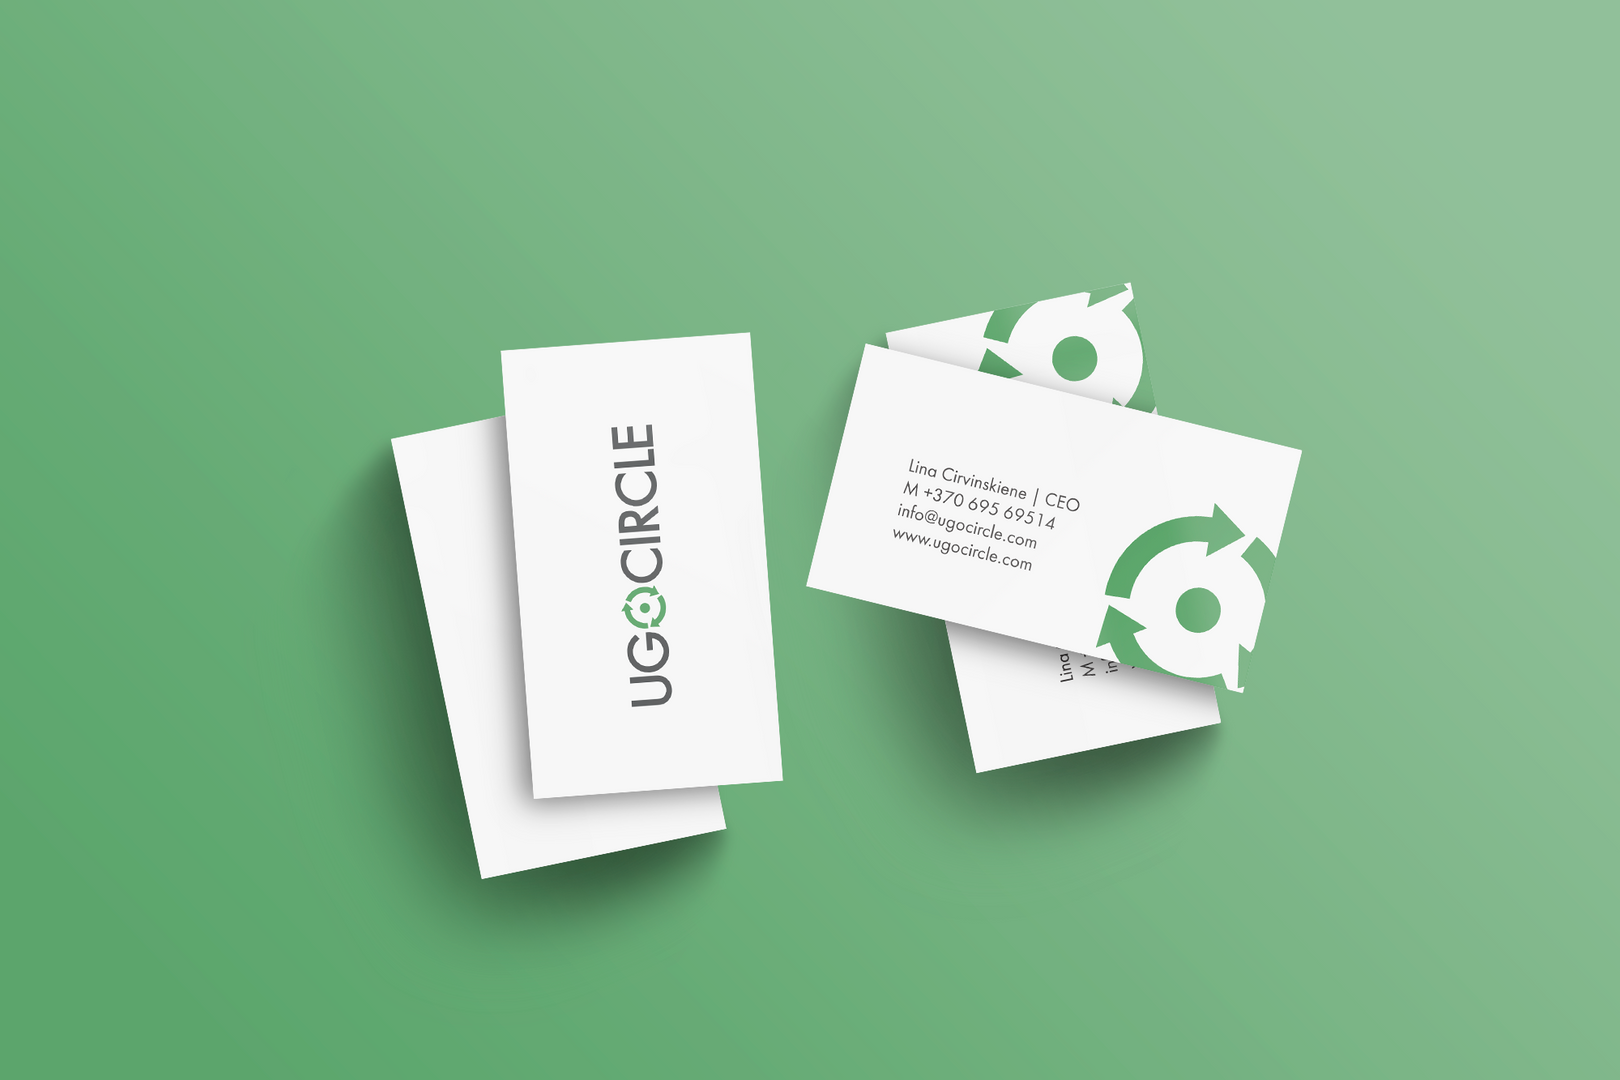 uGoCircle business card